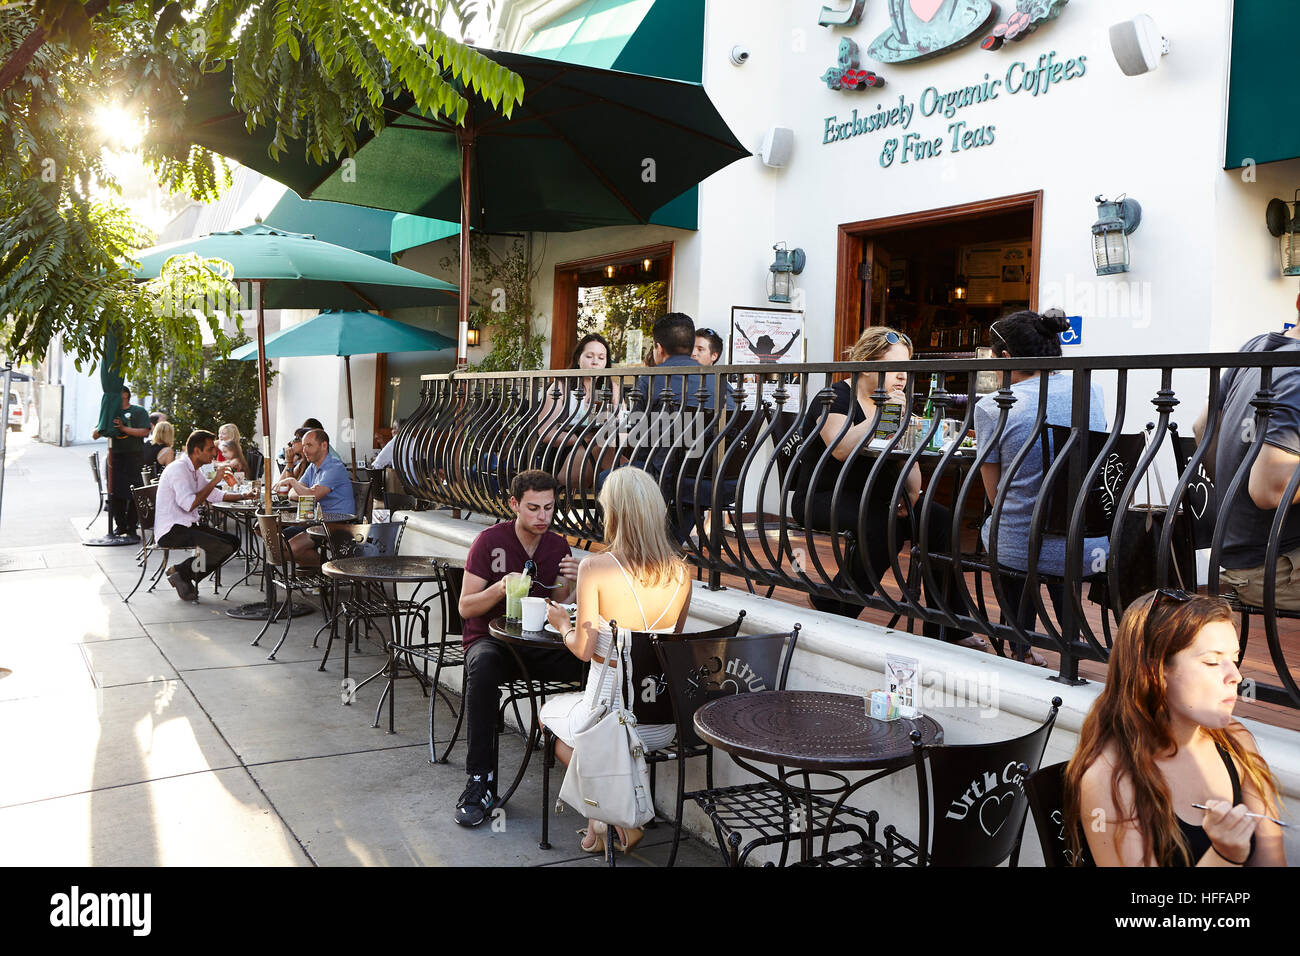 people sitting at cafe table. people sitting on the terrace of urth cafe melrose avenue, los angeles at table